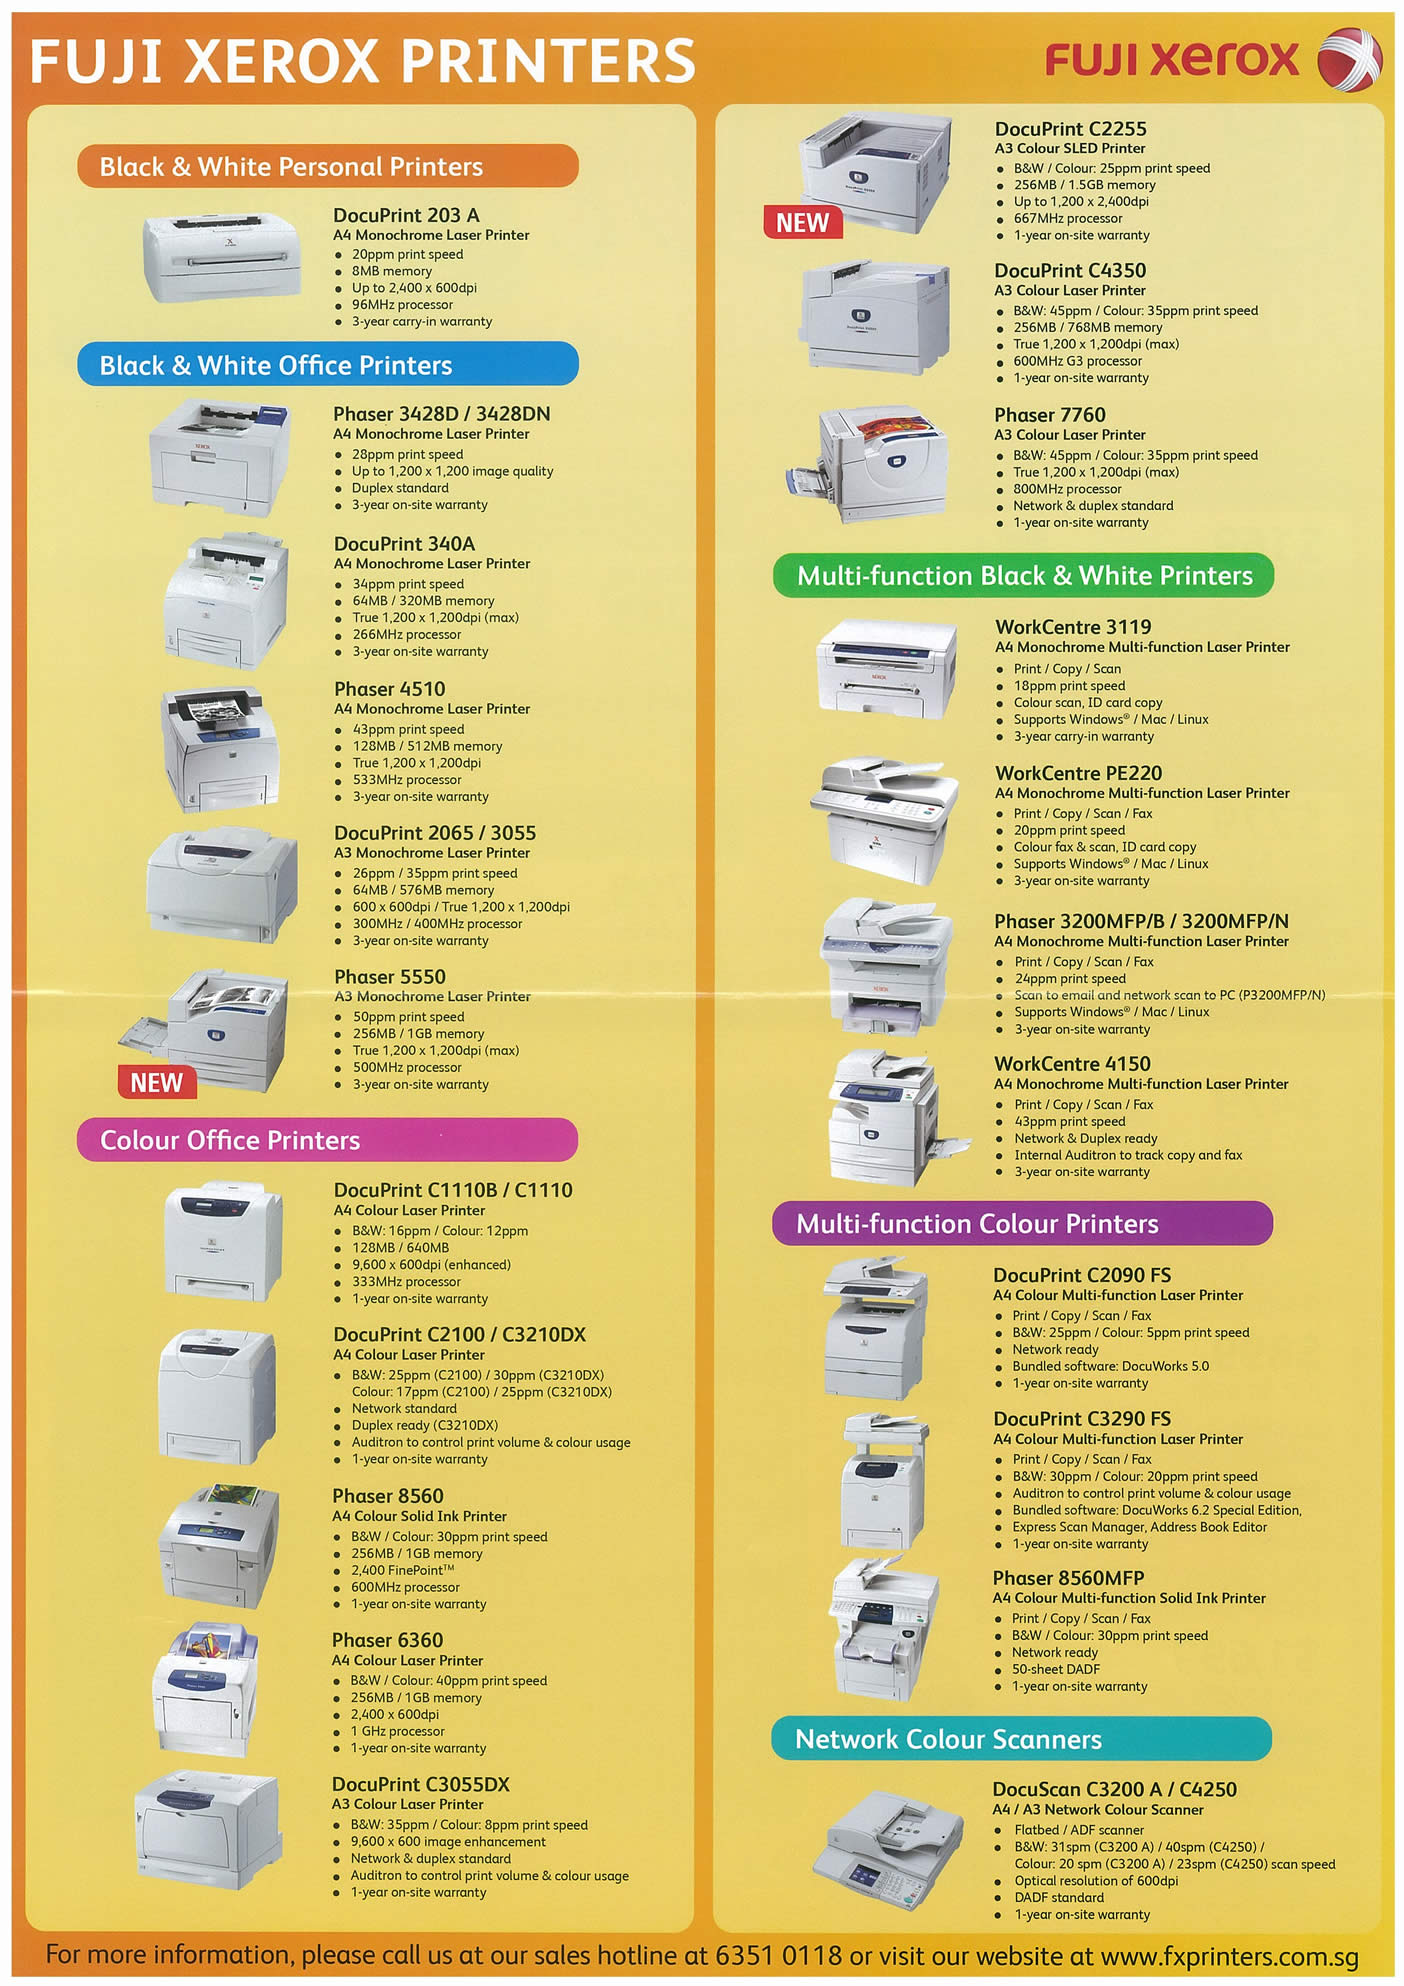 Comex 2008 price list image brochure of Fuji Xerox Page 2